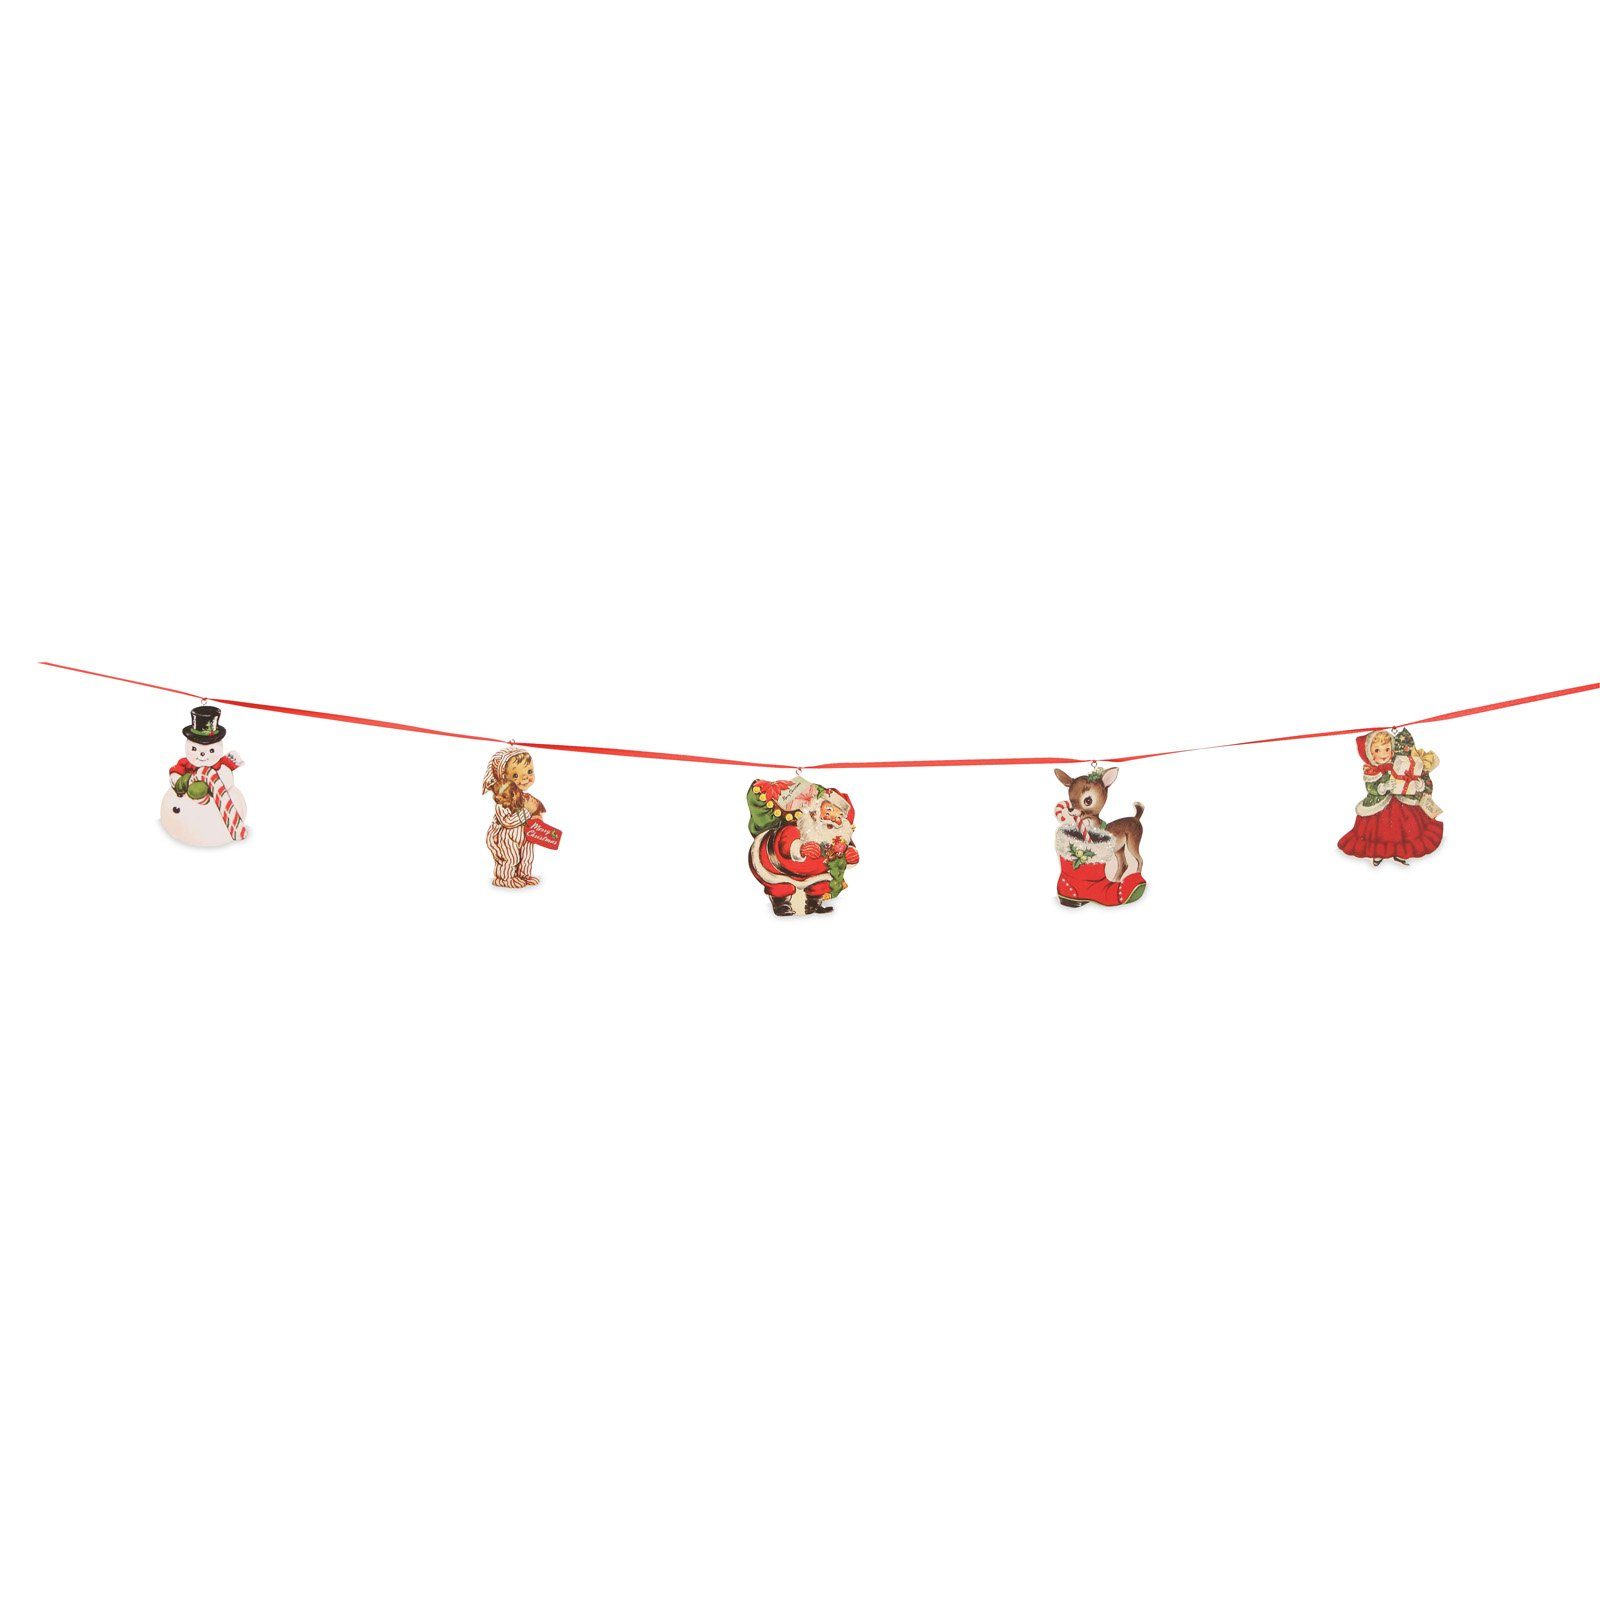 Bethany Lowe Retro Christmas Garland with Wood Cutouts, 70 Inches